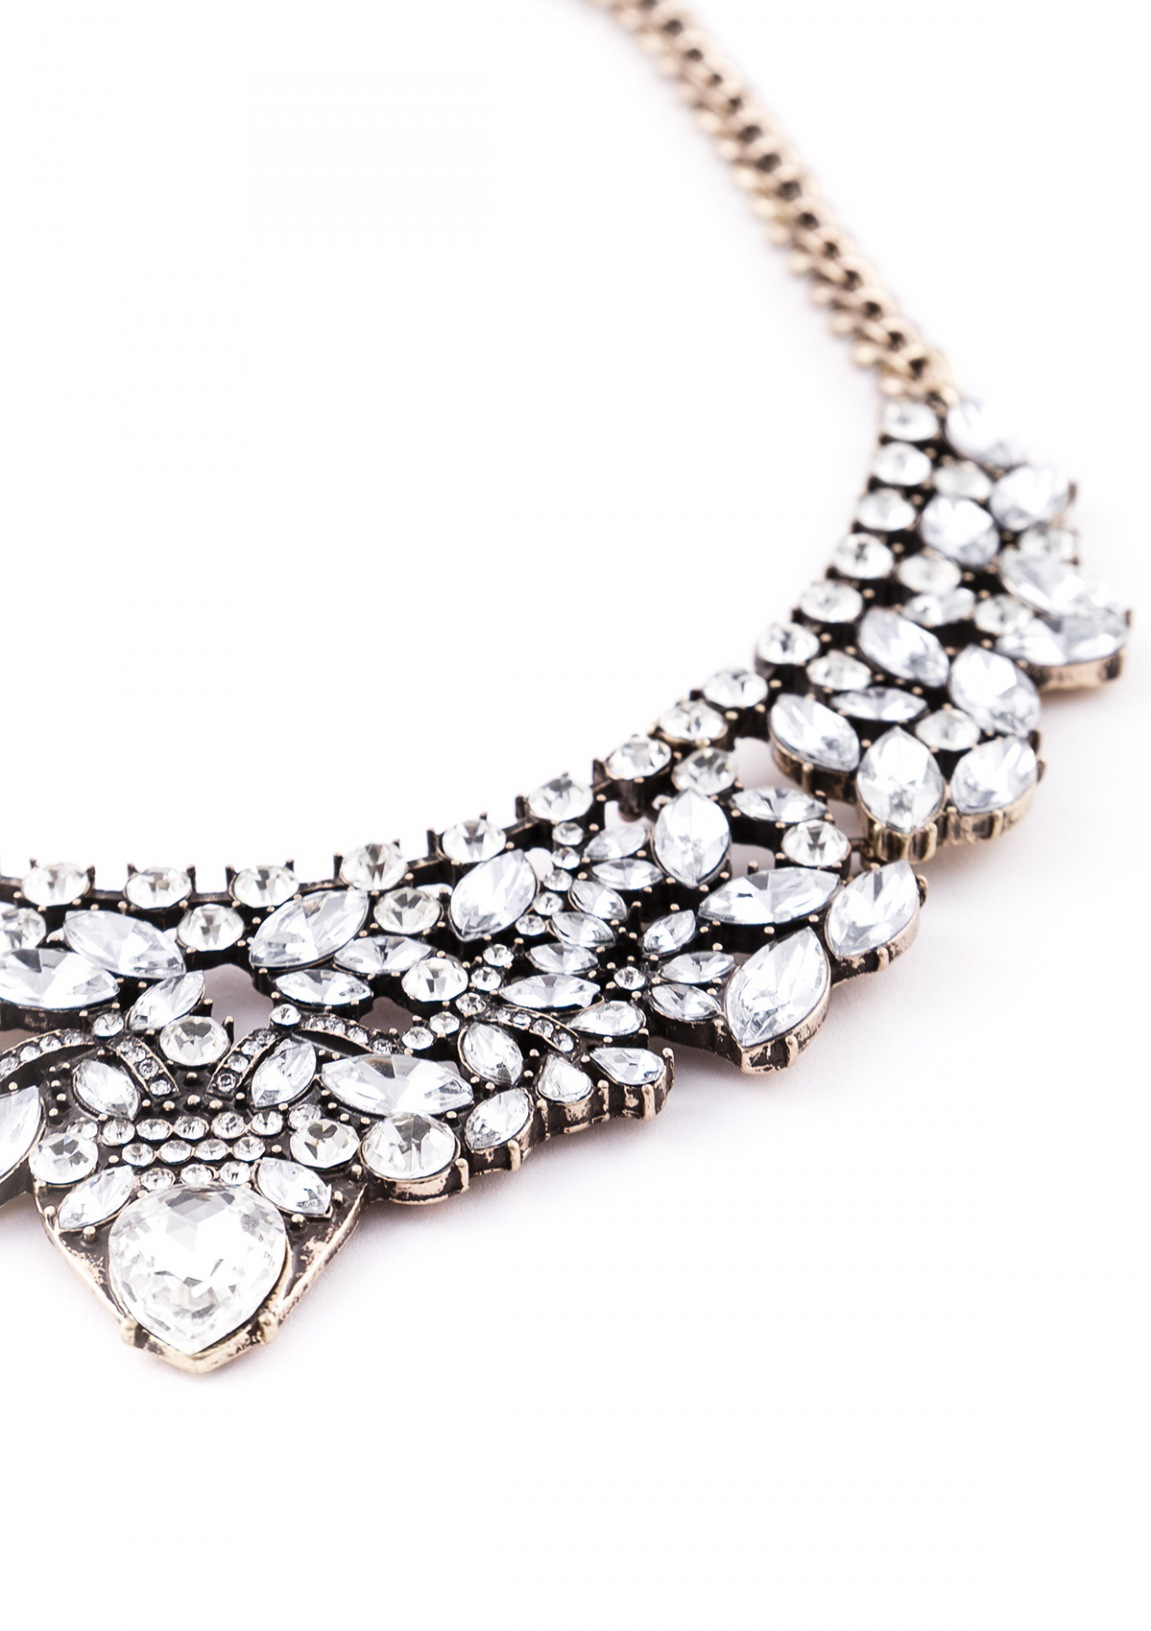 Amazing necklaces to attract this season 29